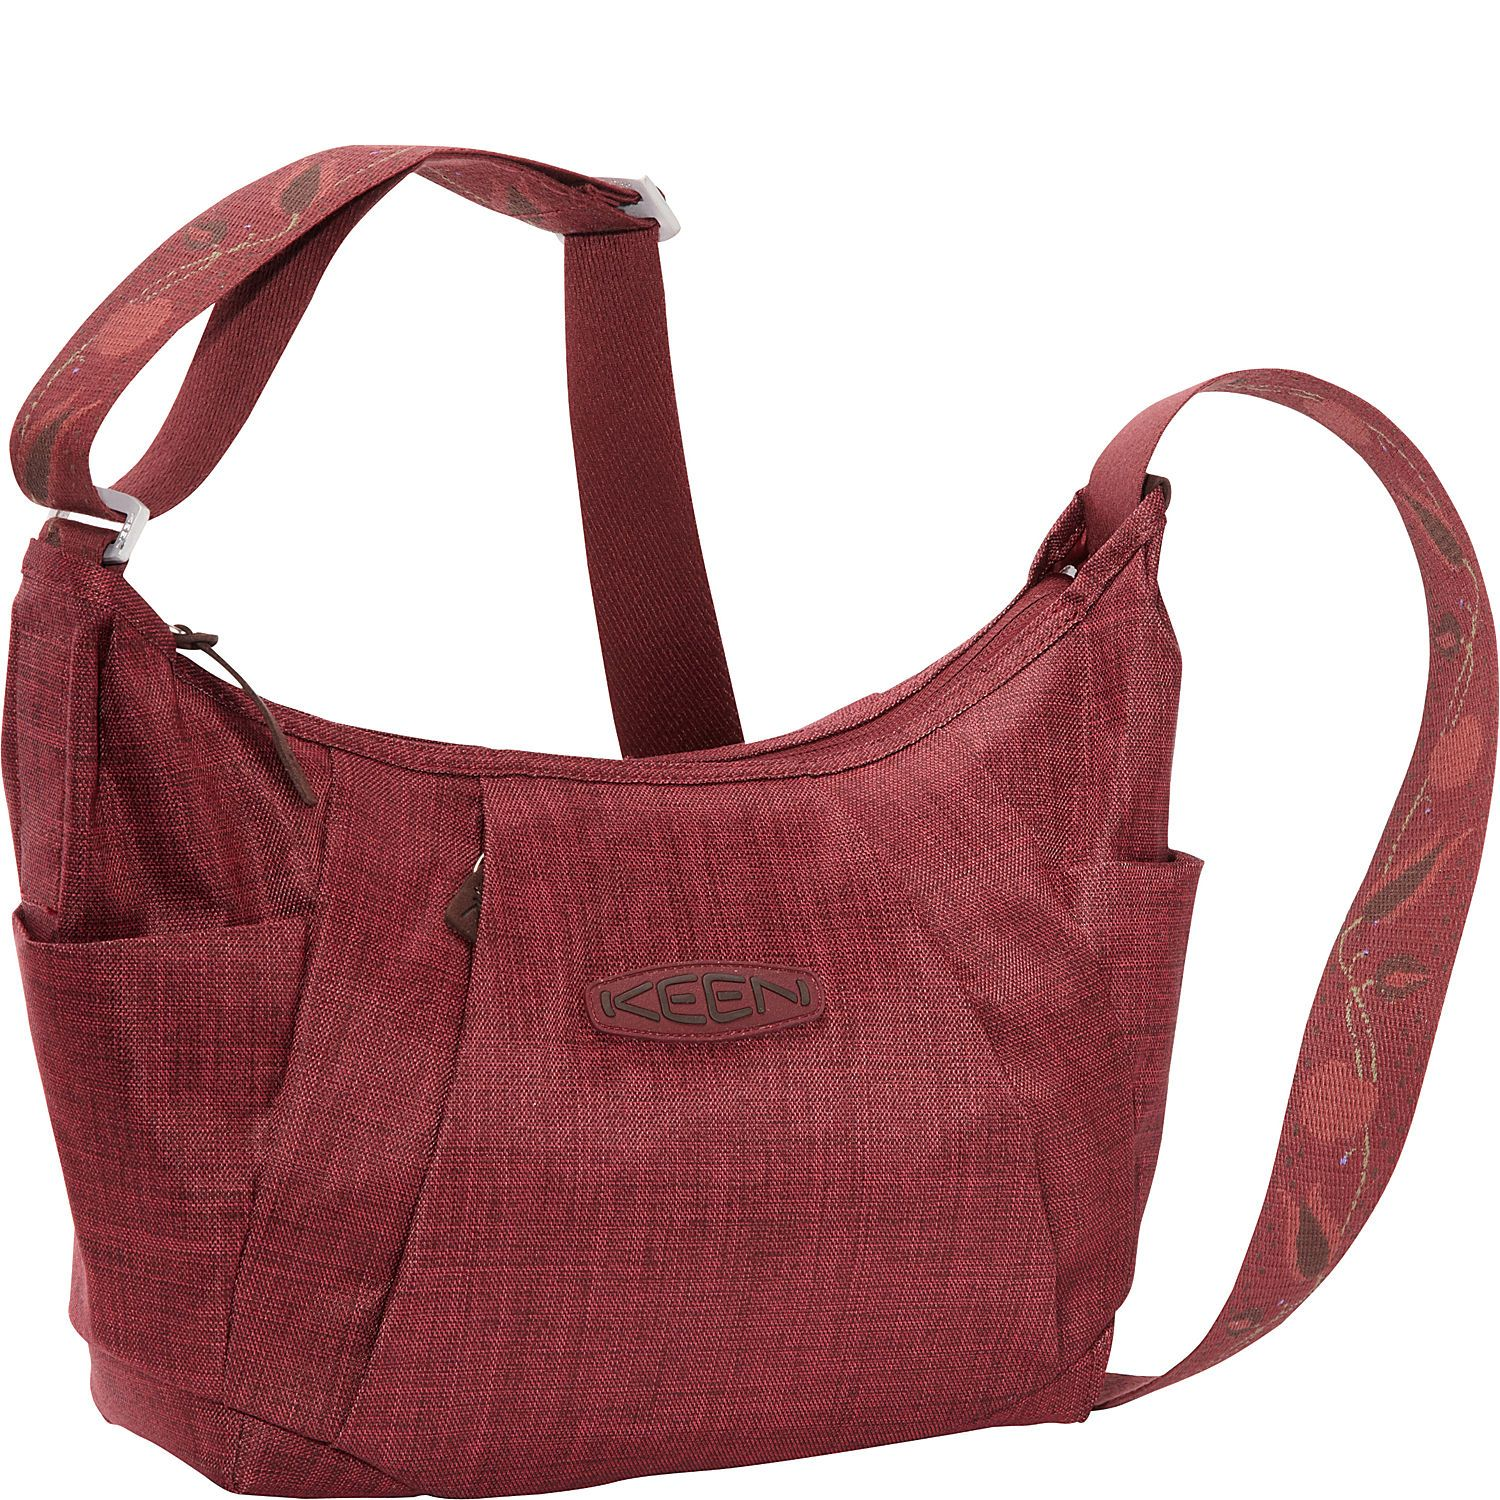 Keen Westport Shoulder Bag Cross Hatch Ebags